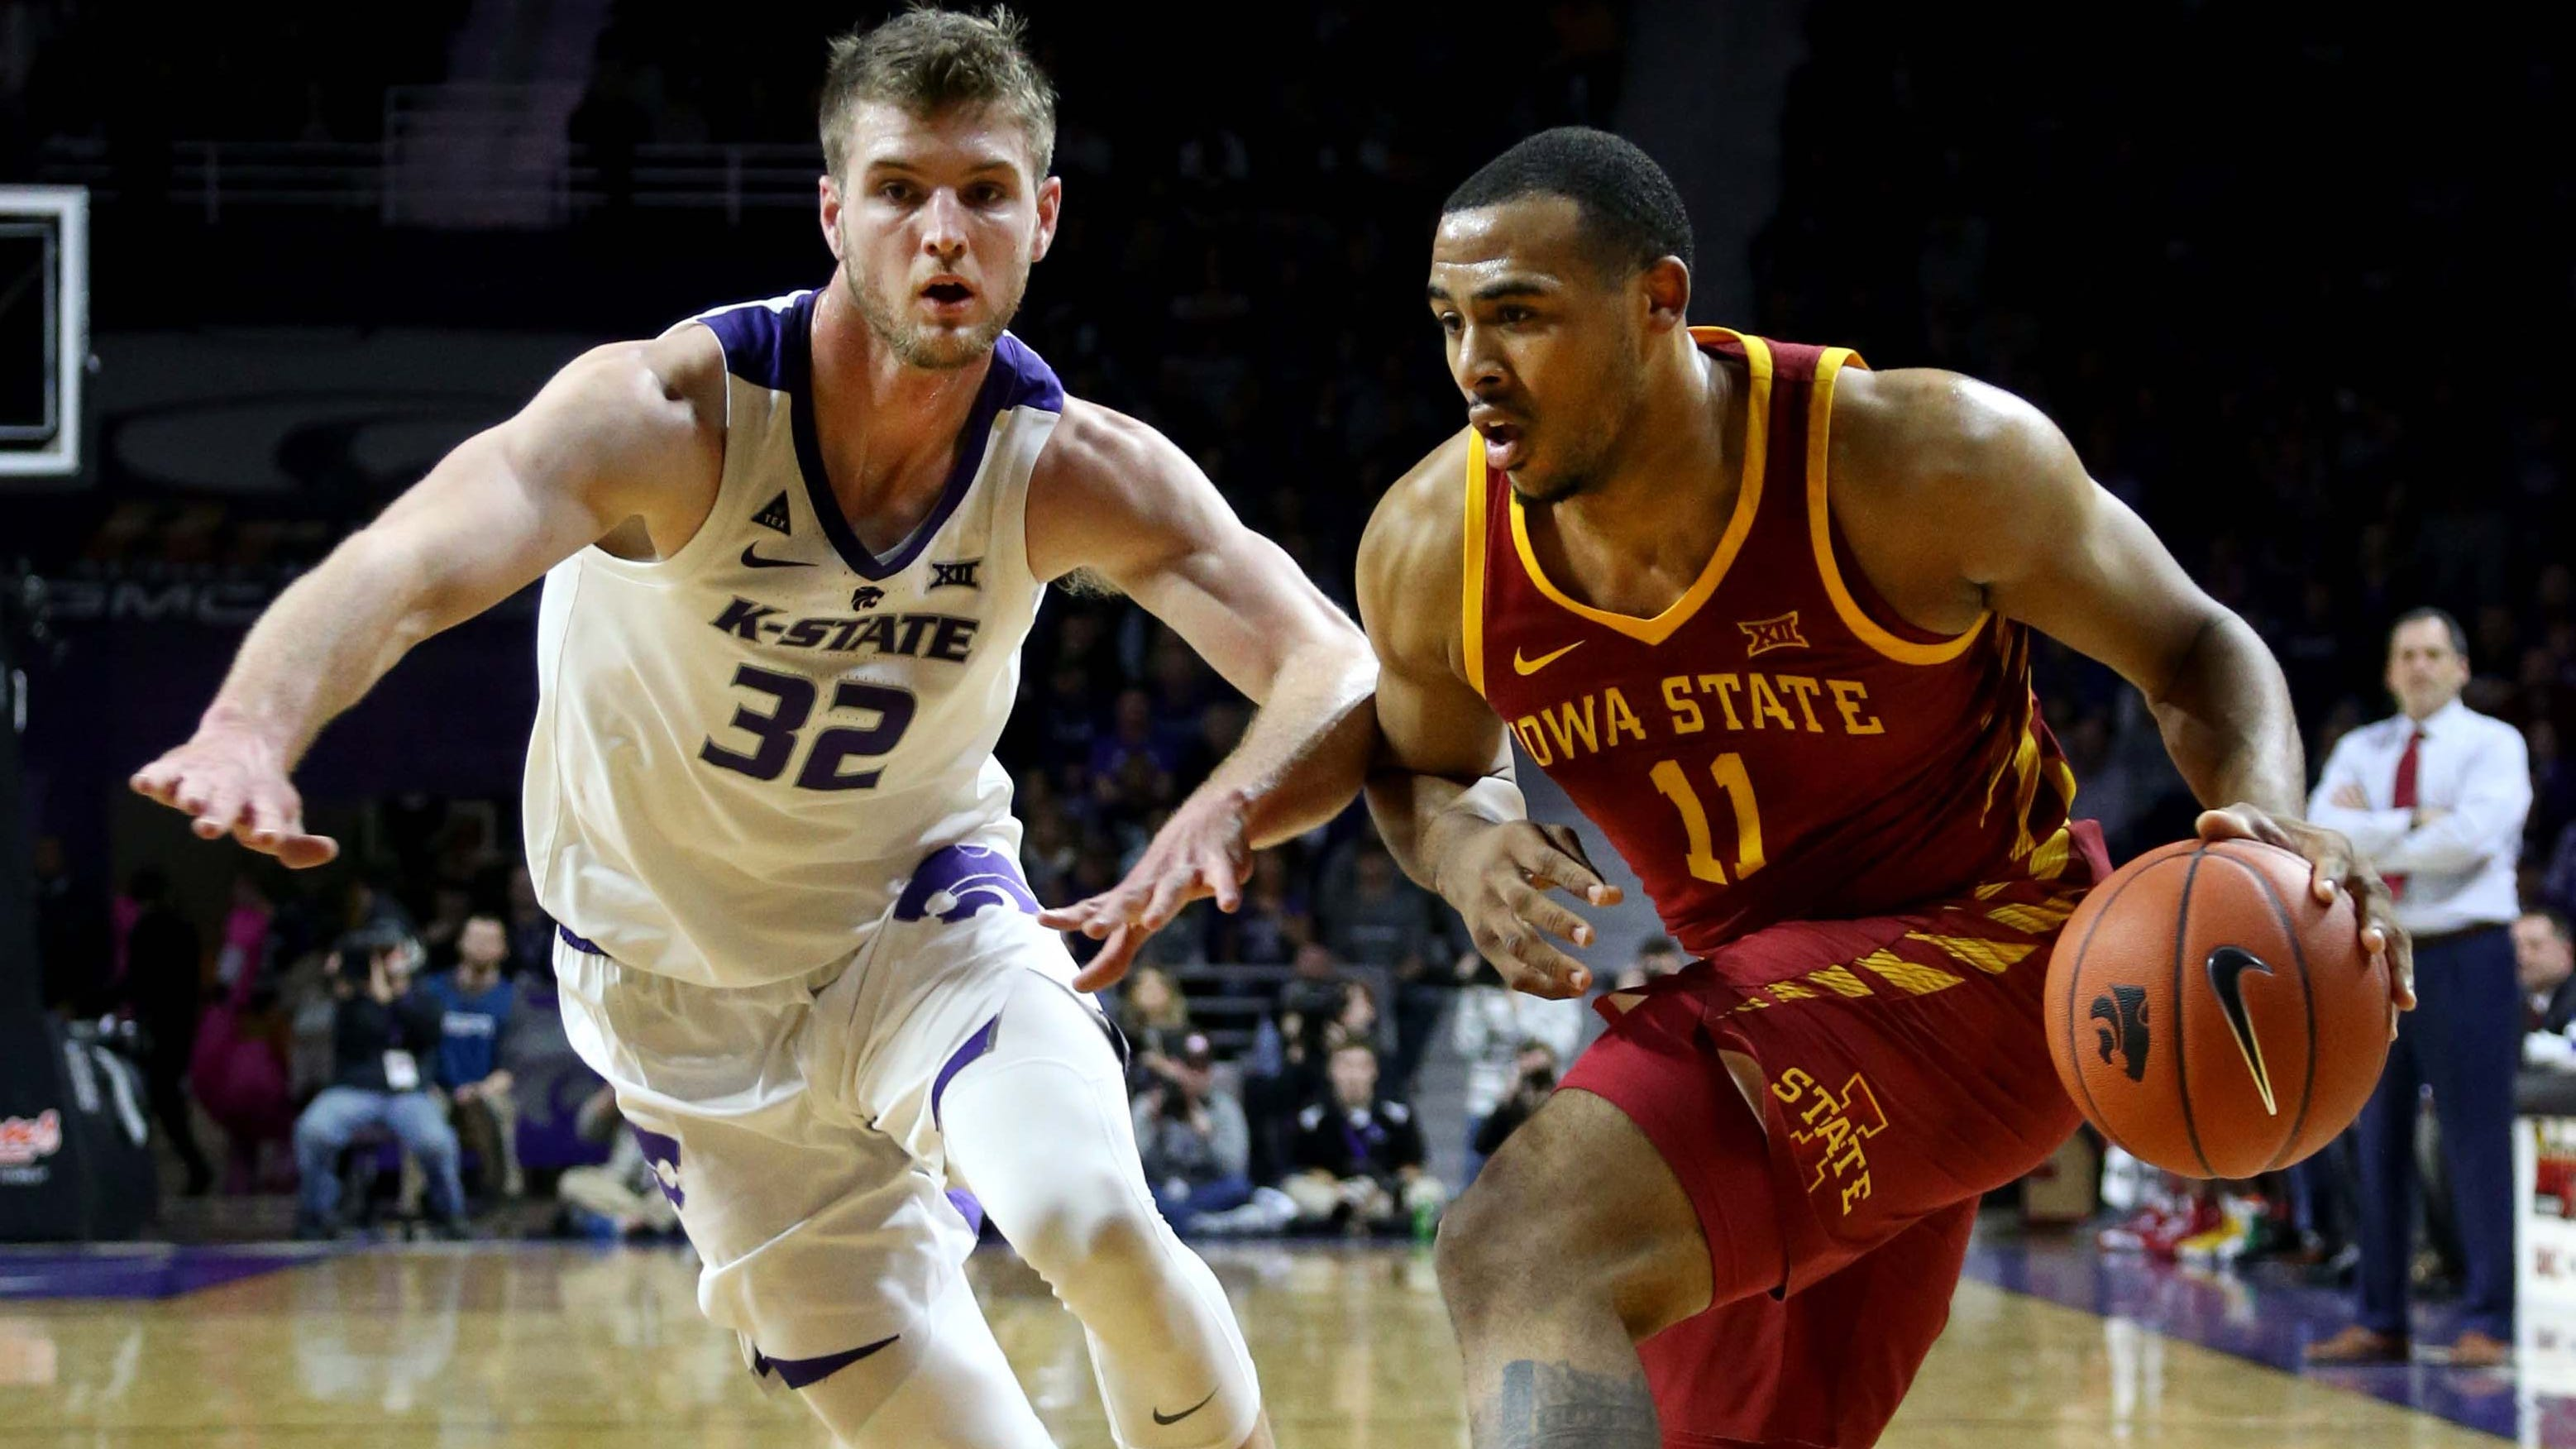 Peterson: Iowa State's A-Team knocks off Big 12 leader to set up a wild conference finish